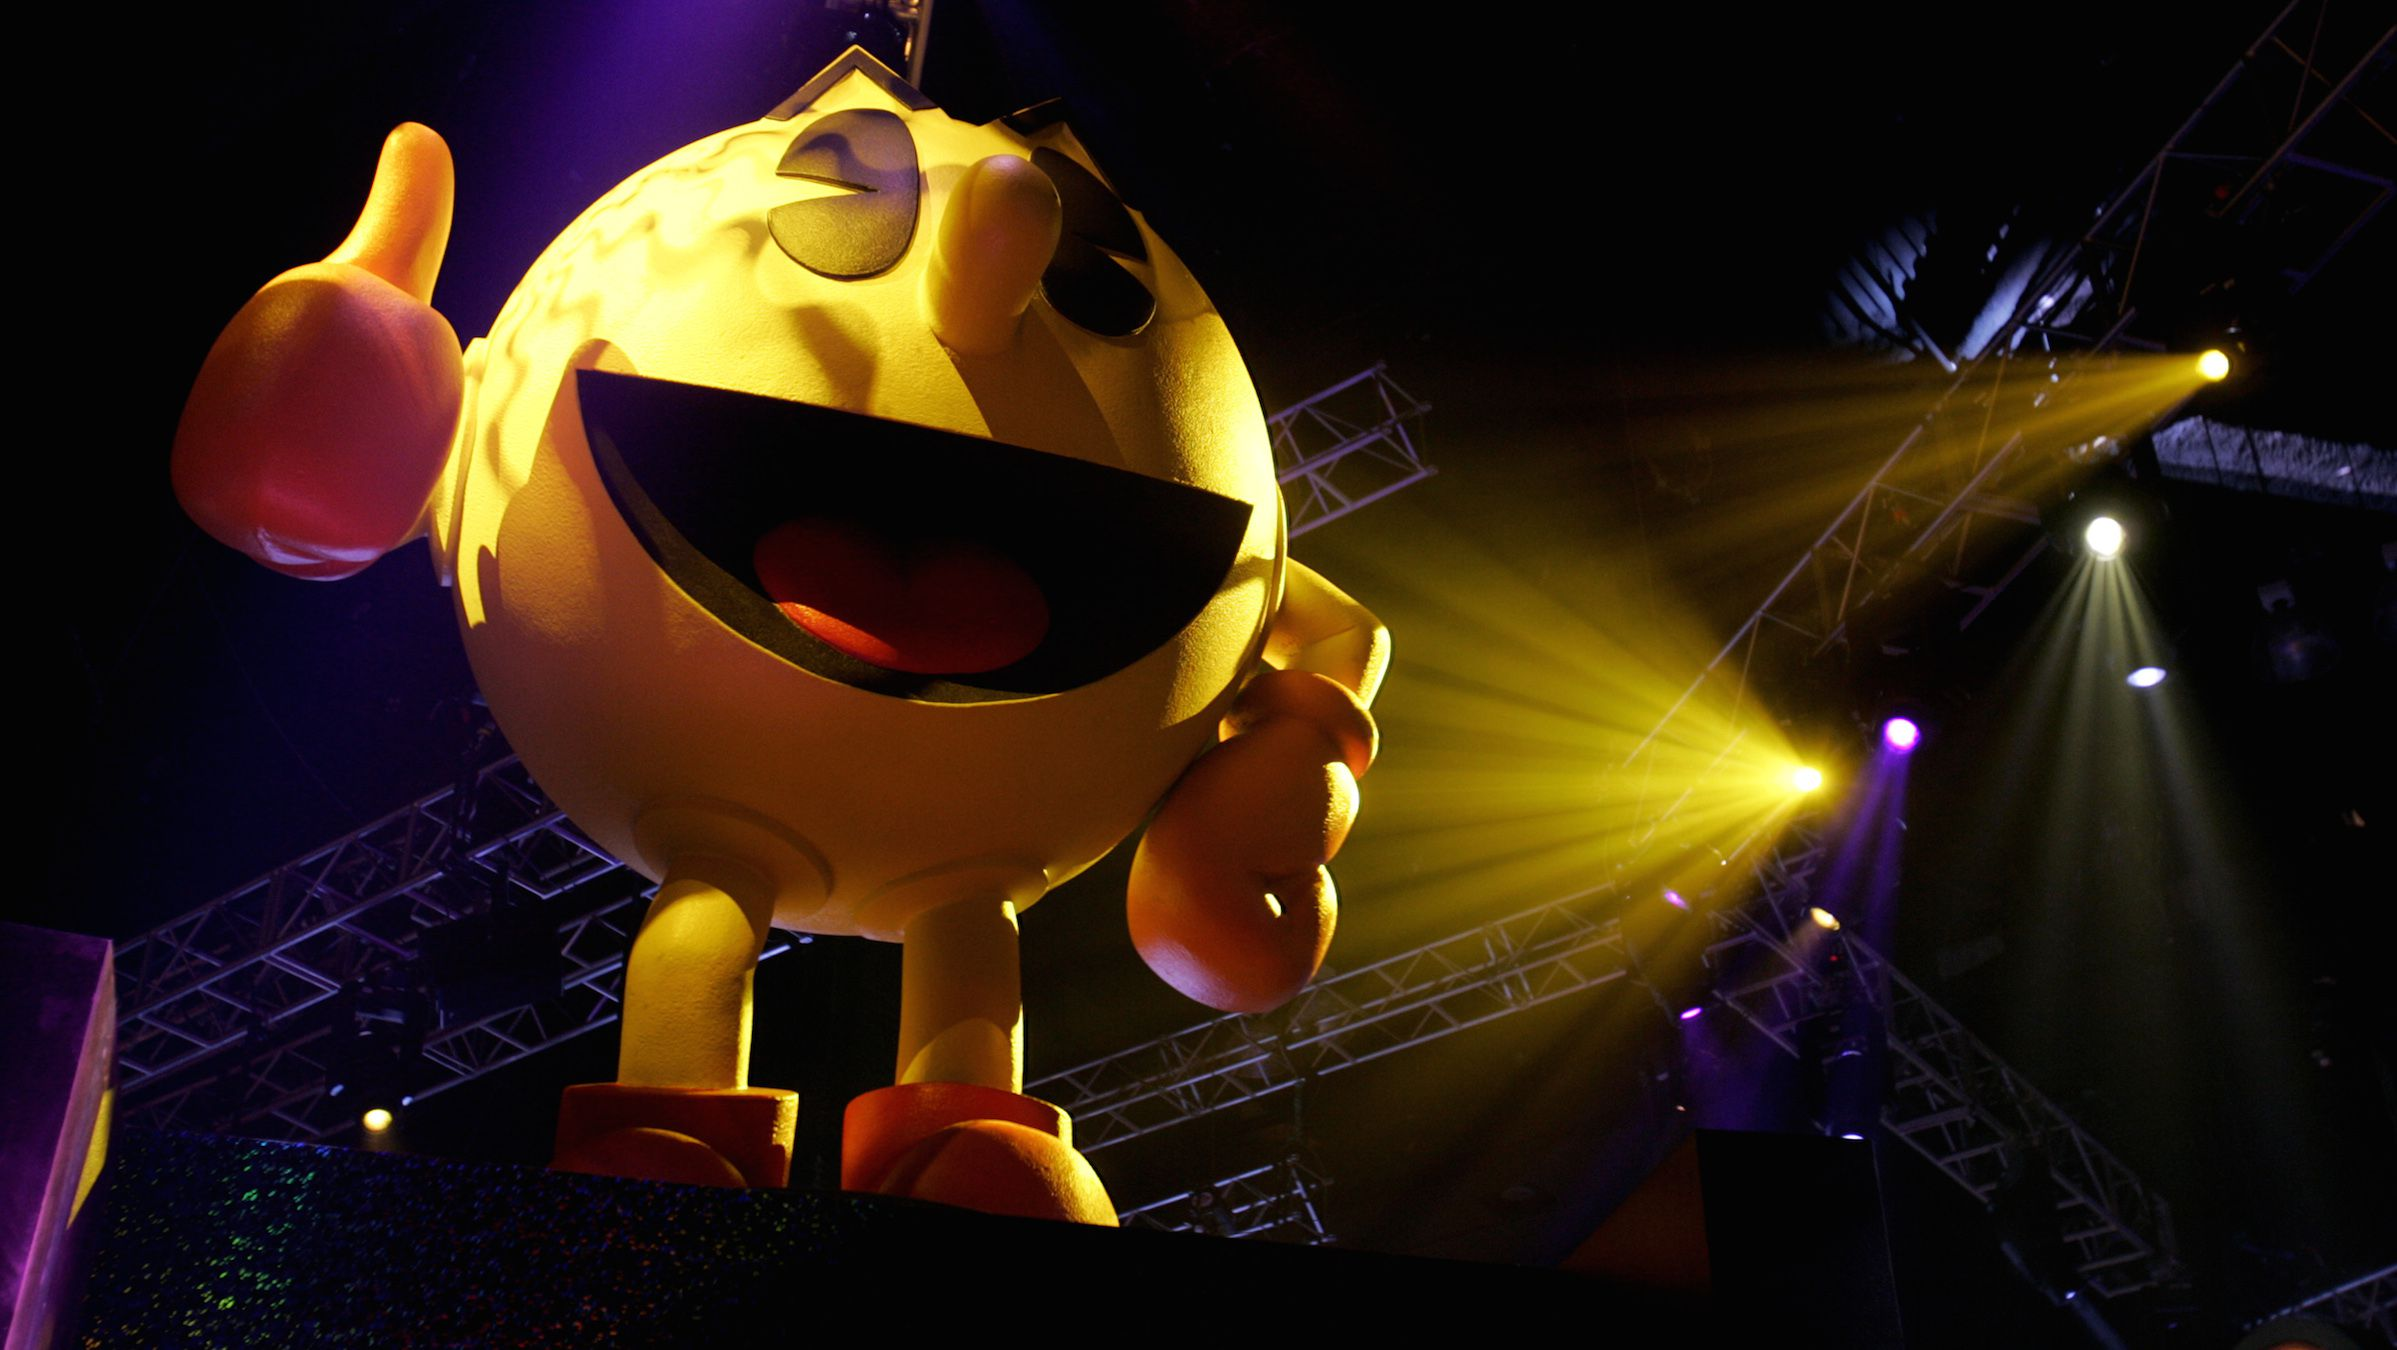 Pac-Man sits atop a display for video game maker Namco at the E3 Convention at the Los Angeles Convention Center, May 19, 2005. The giants in the $10 billion video gaming industry wrap up their annual meeting May 20, 2005. REUTERS/Sam Mircovich  SM/HK - RTRBSMK